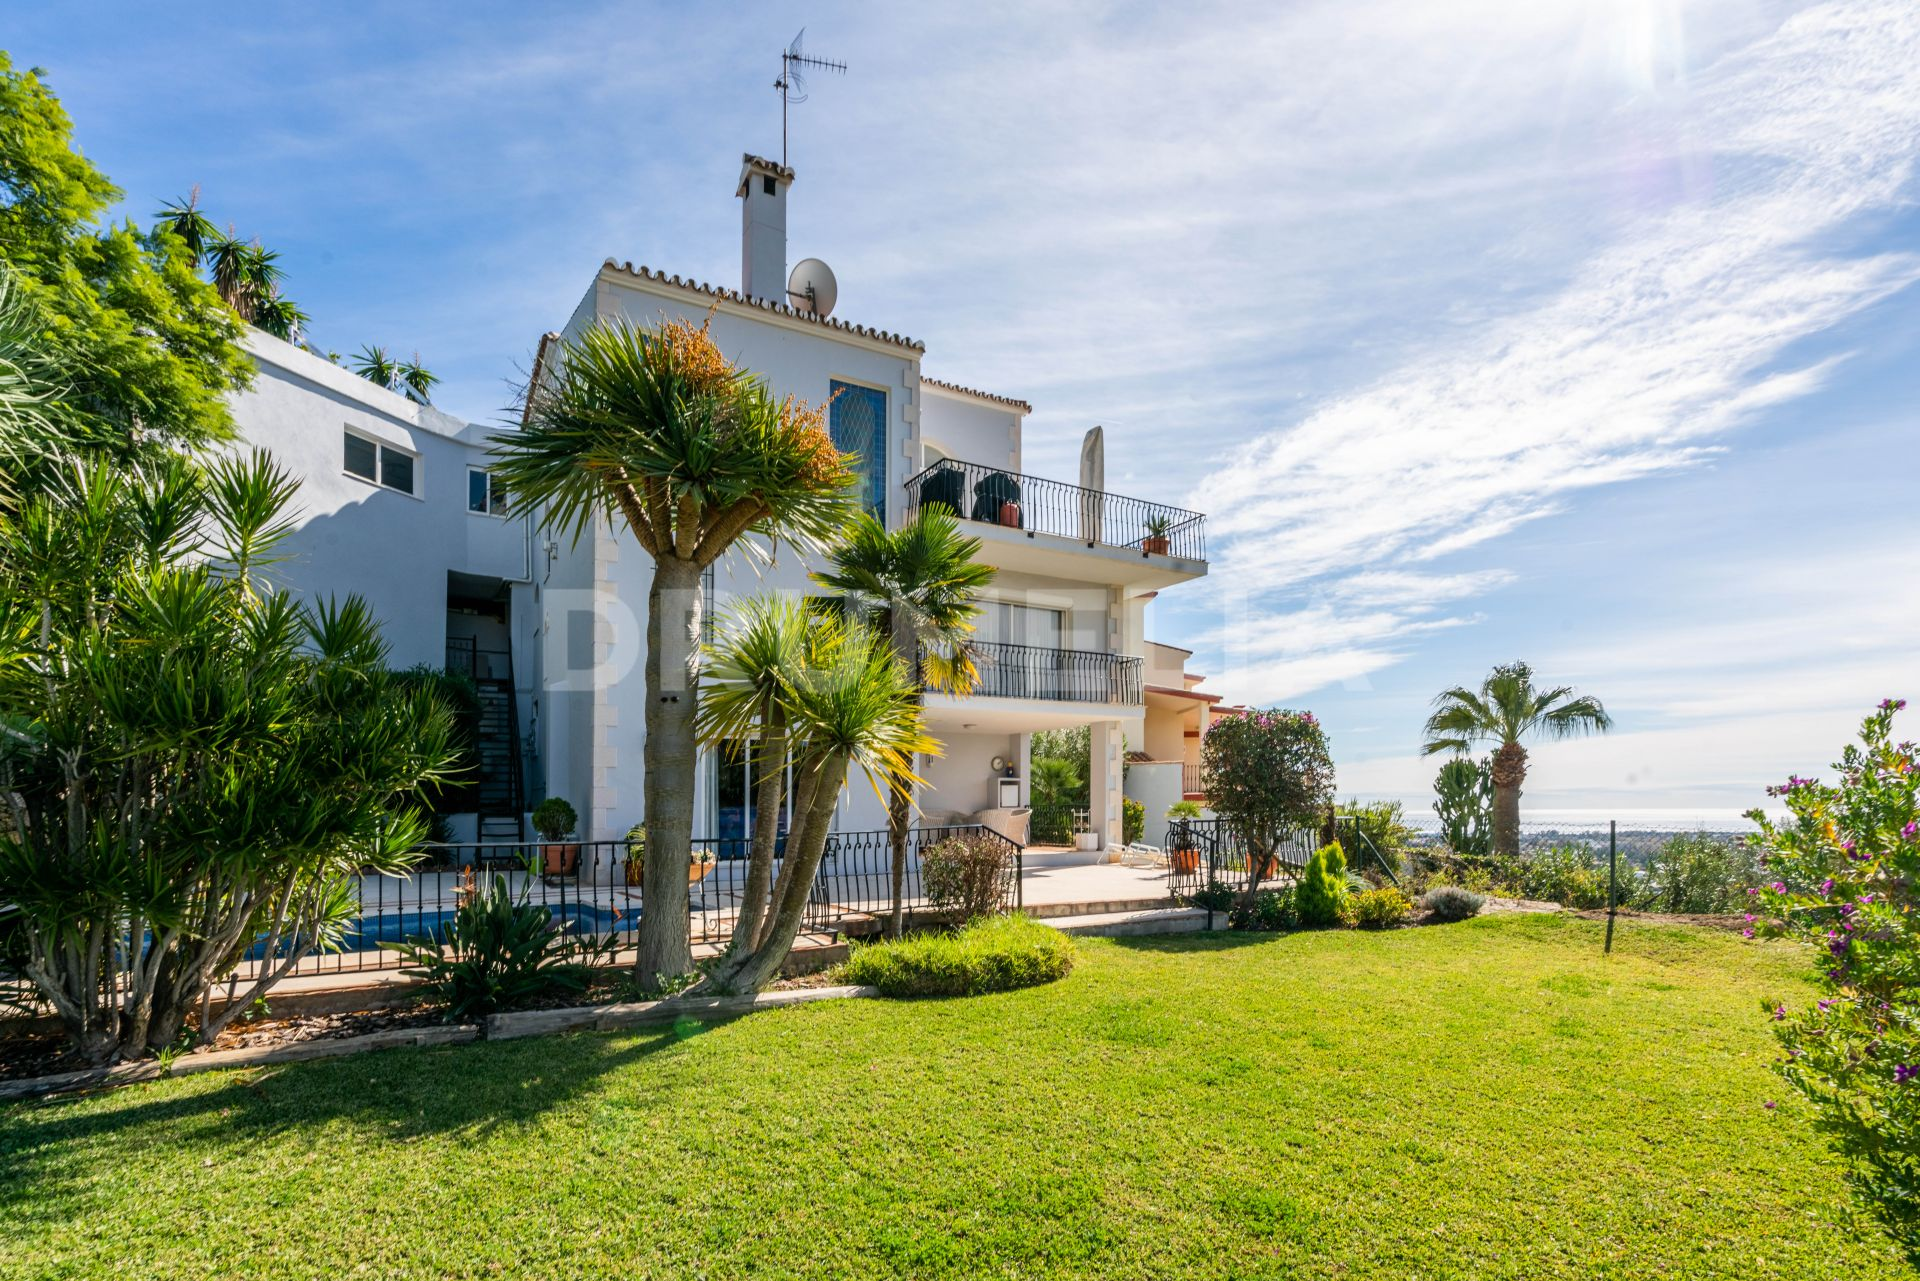 Benahavis, Beautiful Modern Mediterranean Villa with Stunning Views, El Herrojo, Benahavis